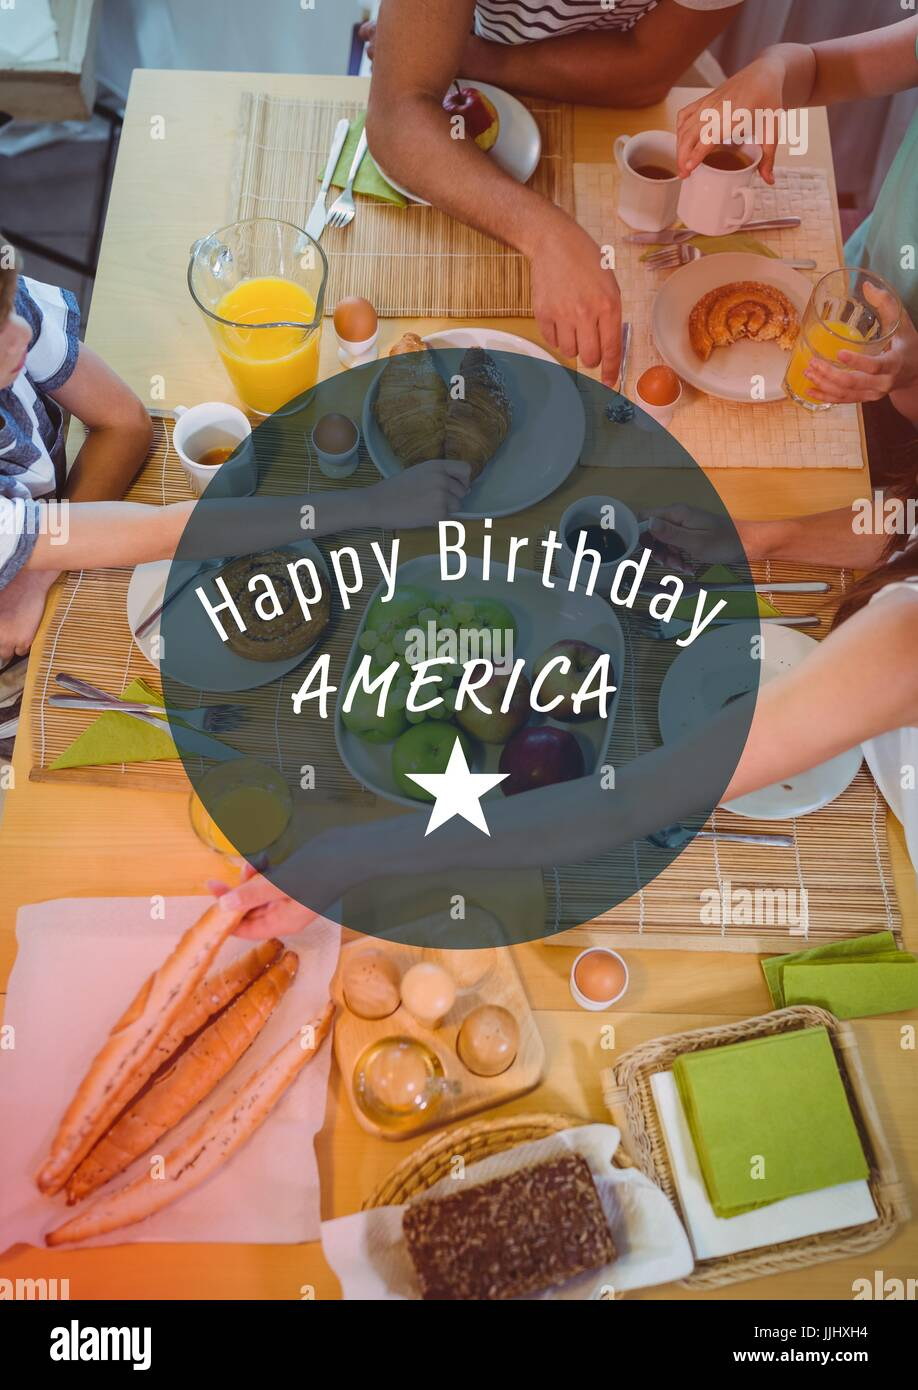 White fourth of July graphic in blue circle against overhead of family dinner with red overlay - Stock Image